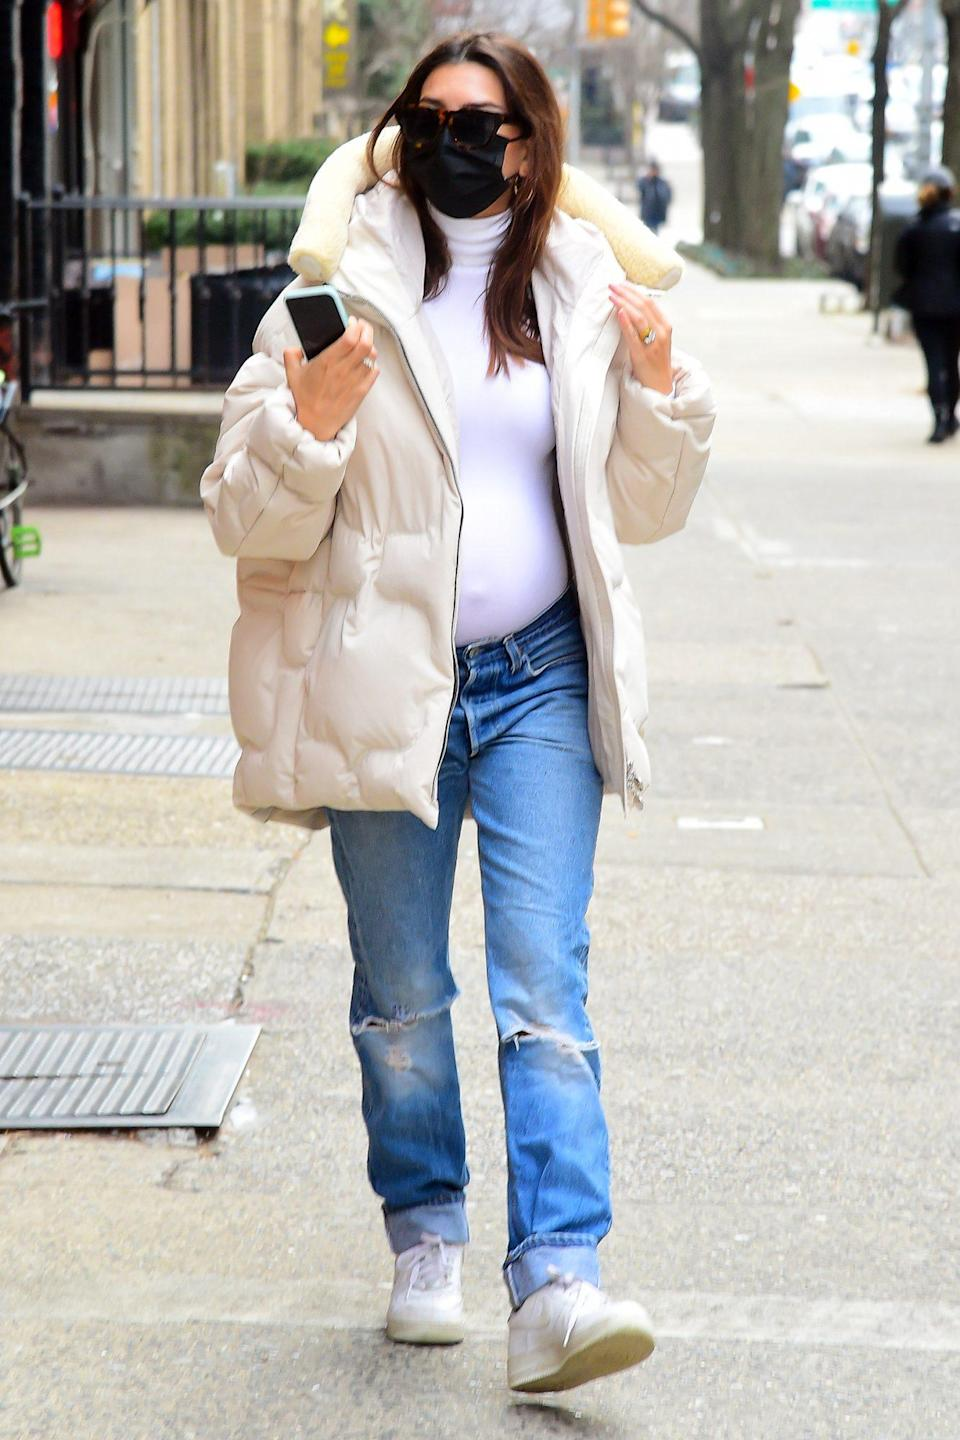 <p>Emily Ratajkowski shows off her growing baby bump in a white turtleneck and jeans on Wednesday in N.Y.C.</p>